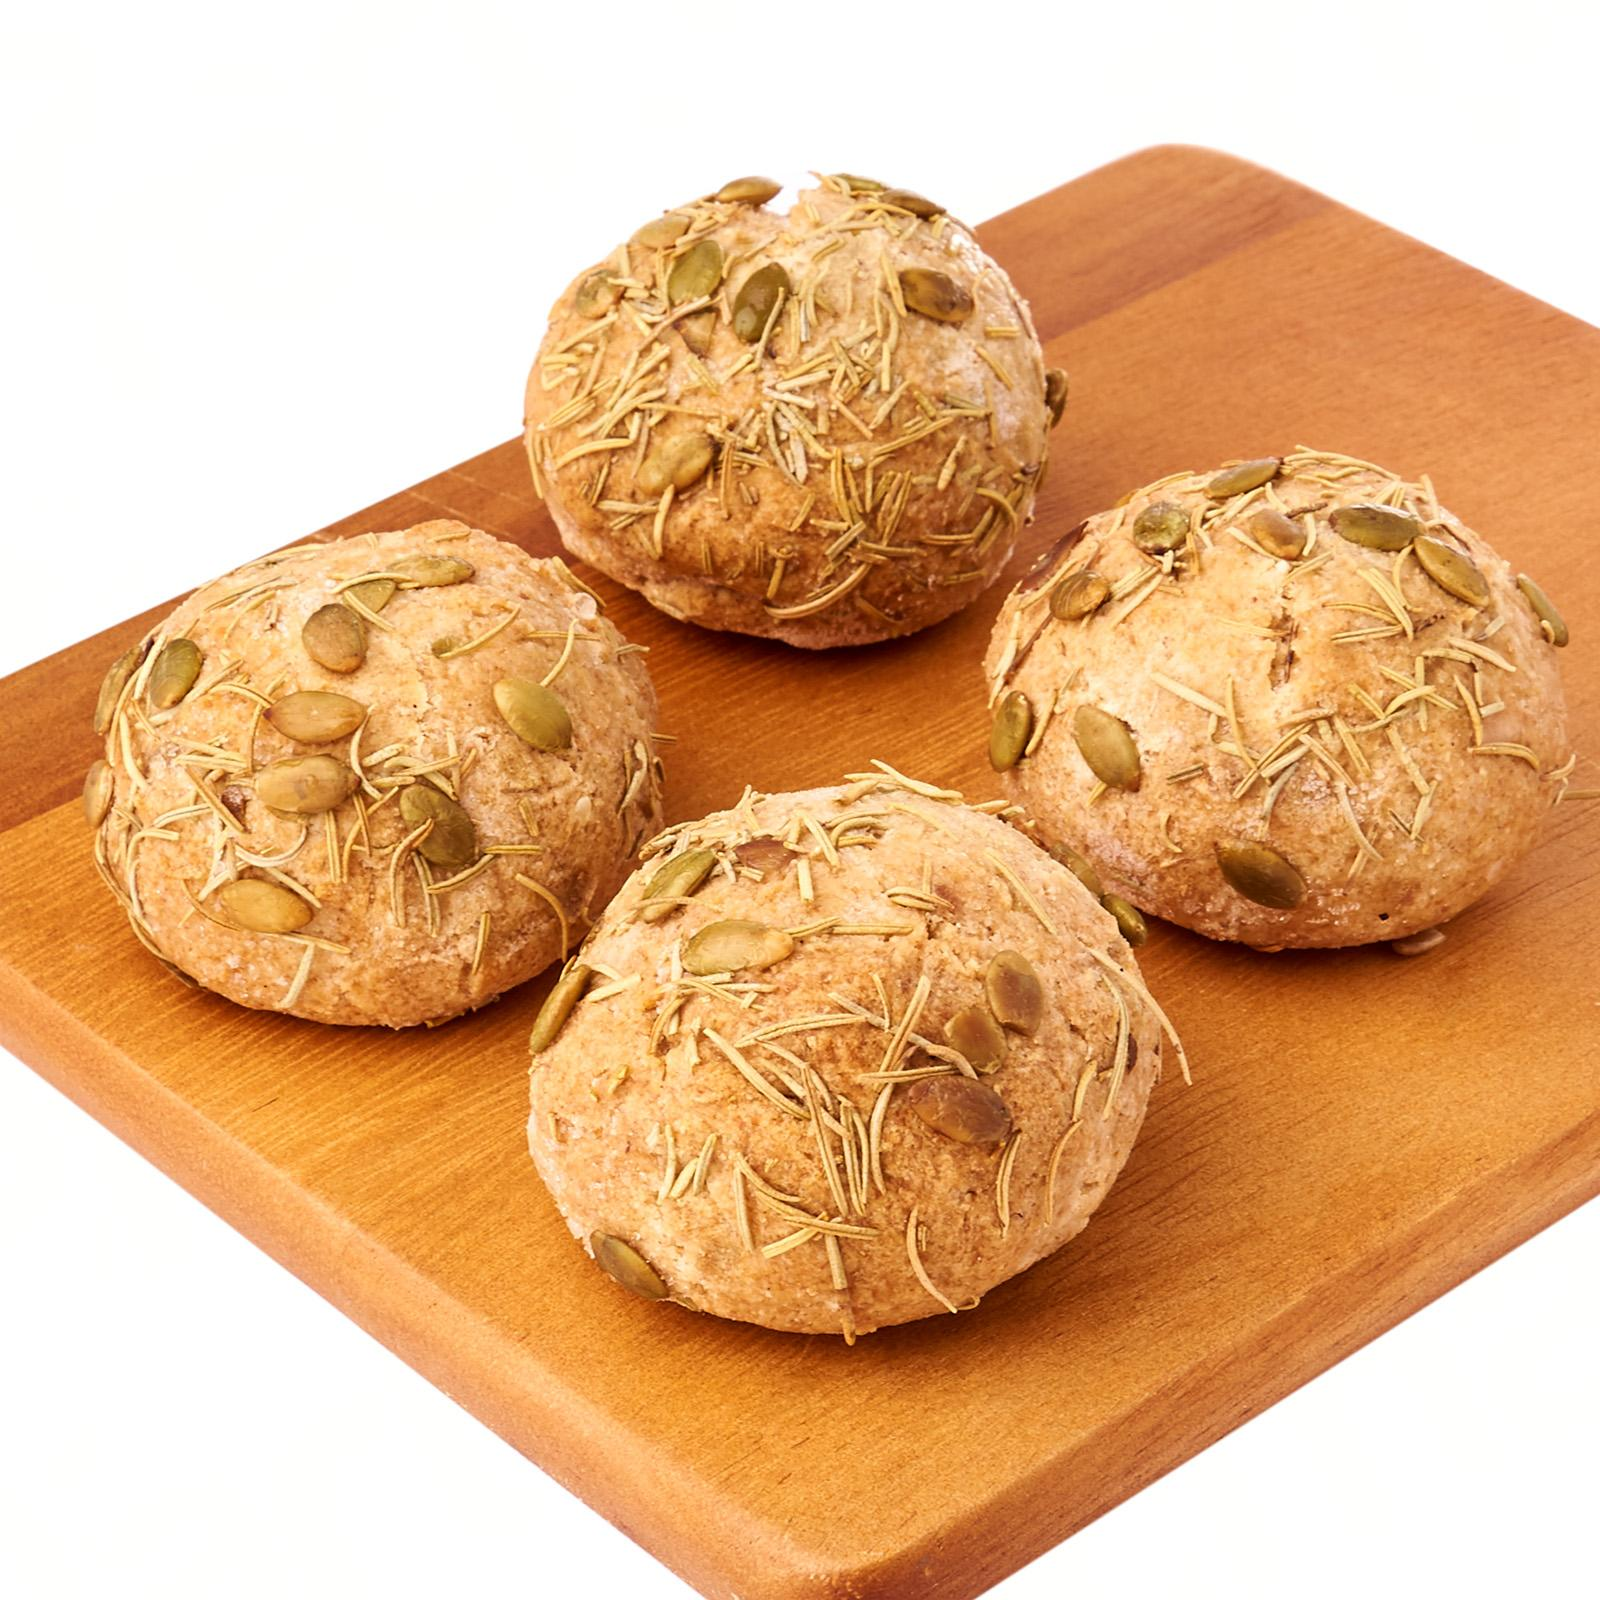 Delcie's Desserts and Cakes Keto Bread Roll - Rosemary with Pumpkin Seeds (Vegan Gluten Free Diabetes Friendly Low Carb Keto Friendly) - Frozen